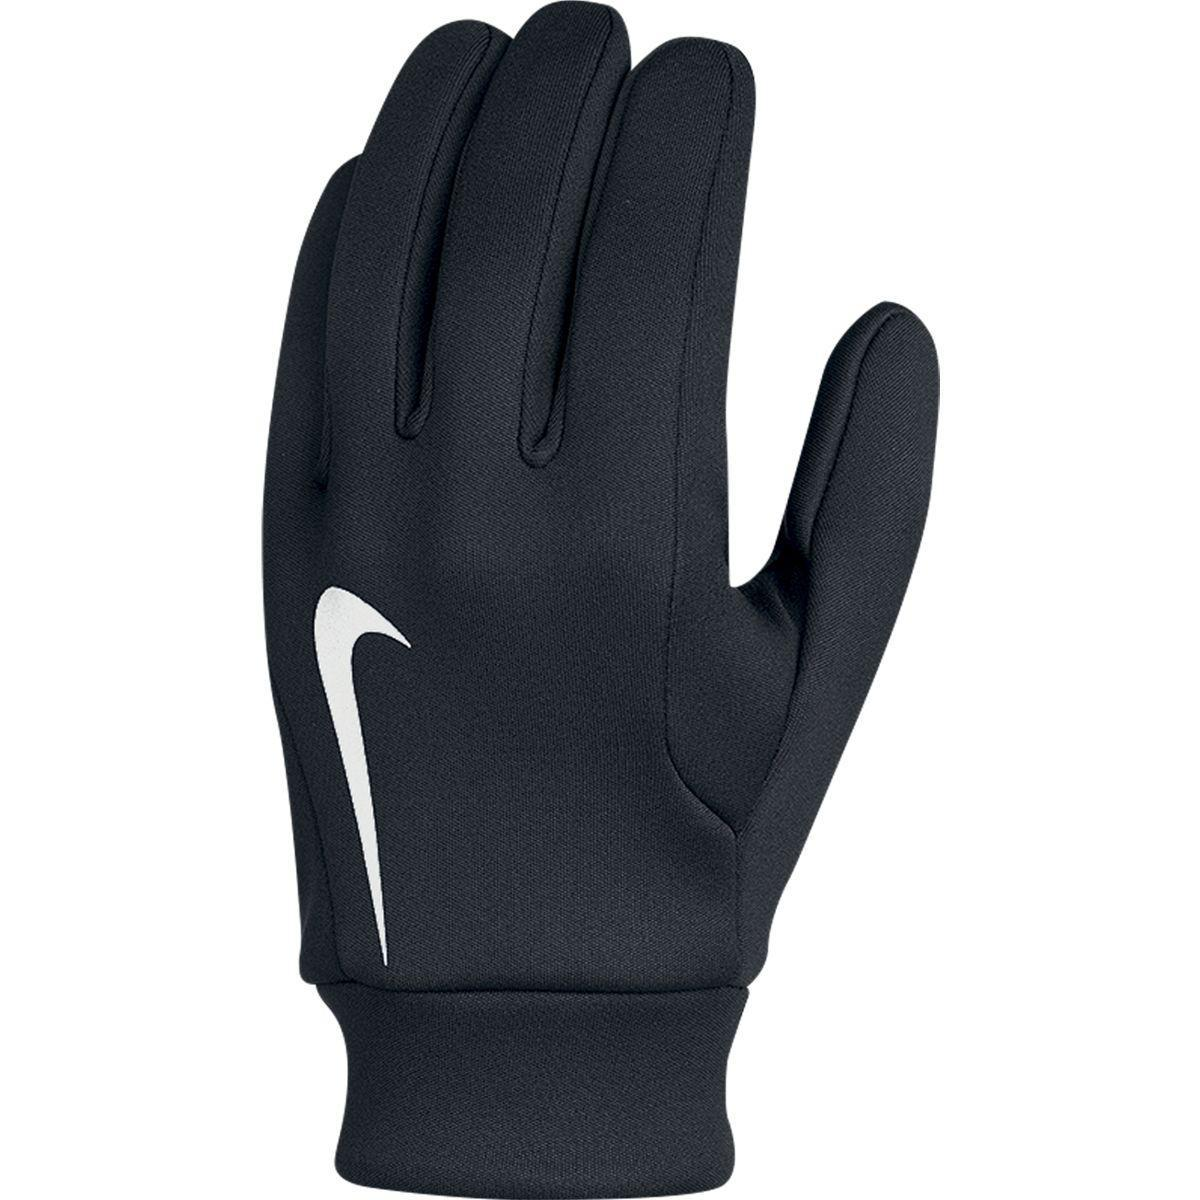 Nike Soccer Gloves: Nike Hyper Warm Field Players Football Gloves